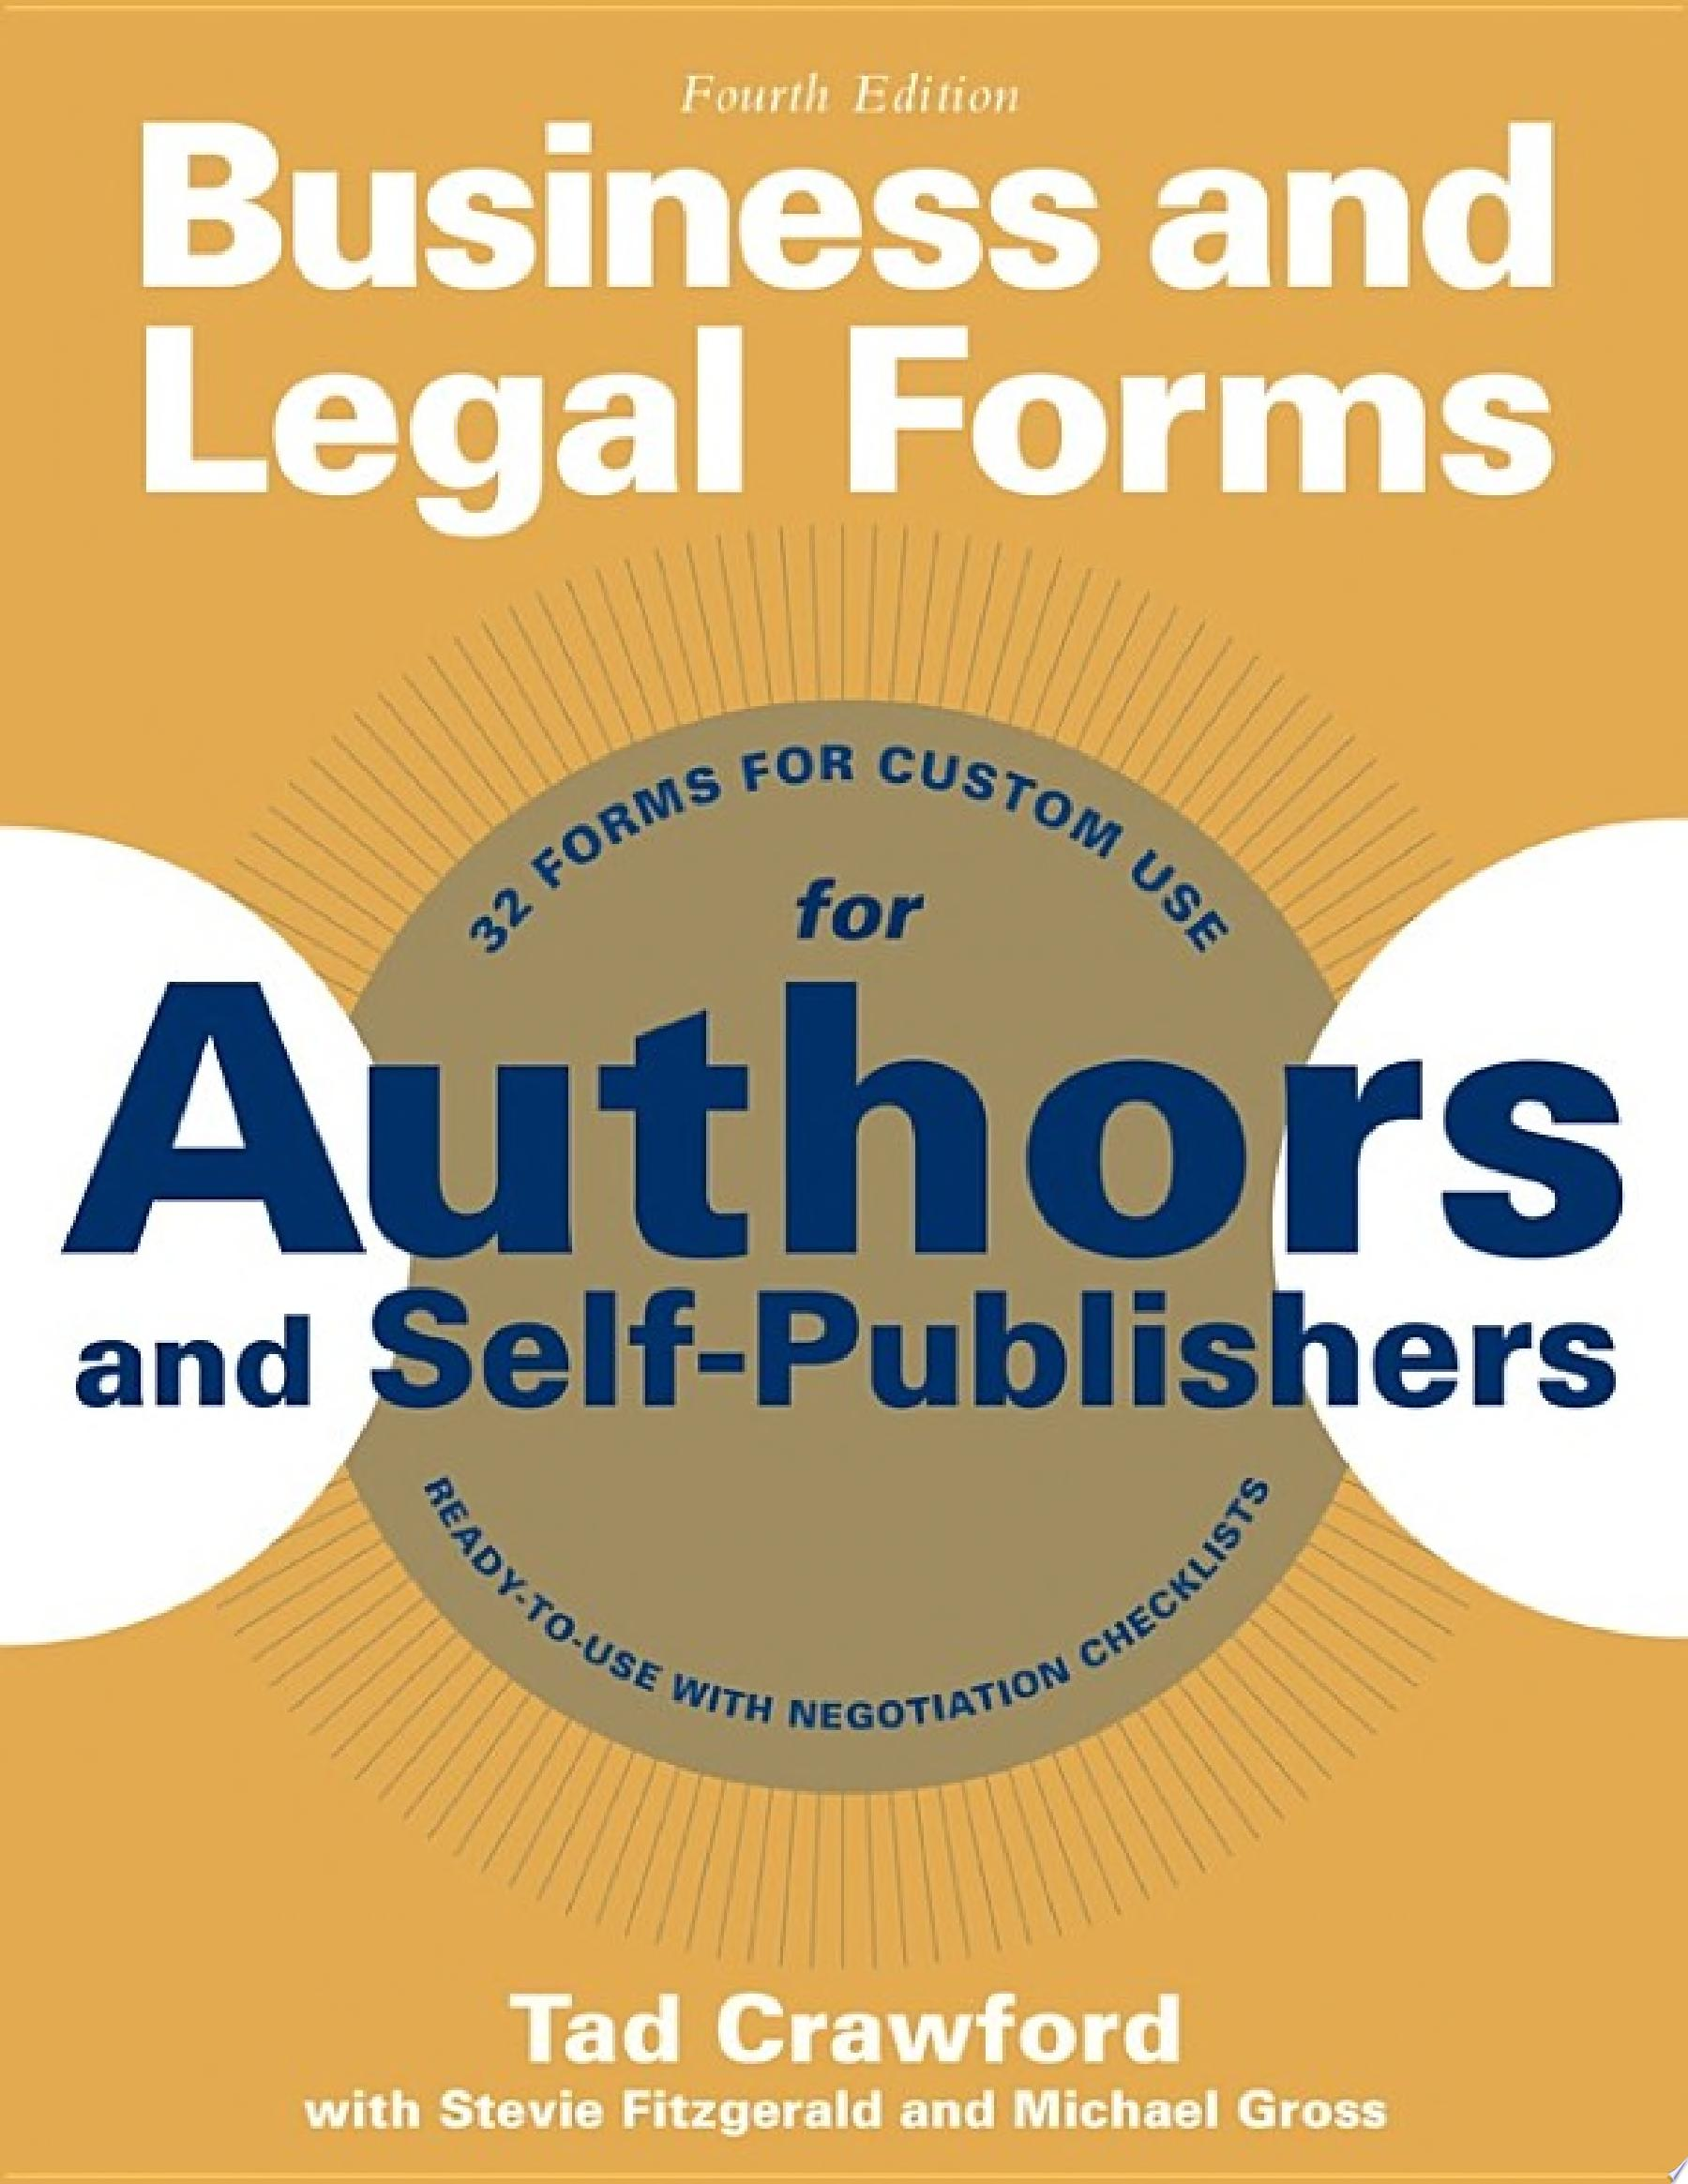 Business and Legal Forms for Authors and Self Publishers